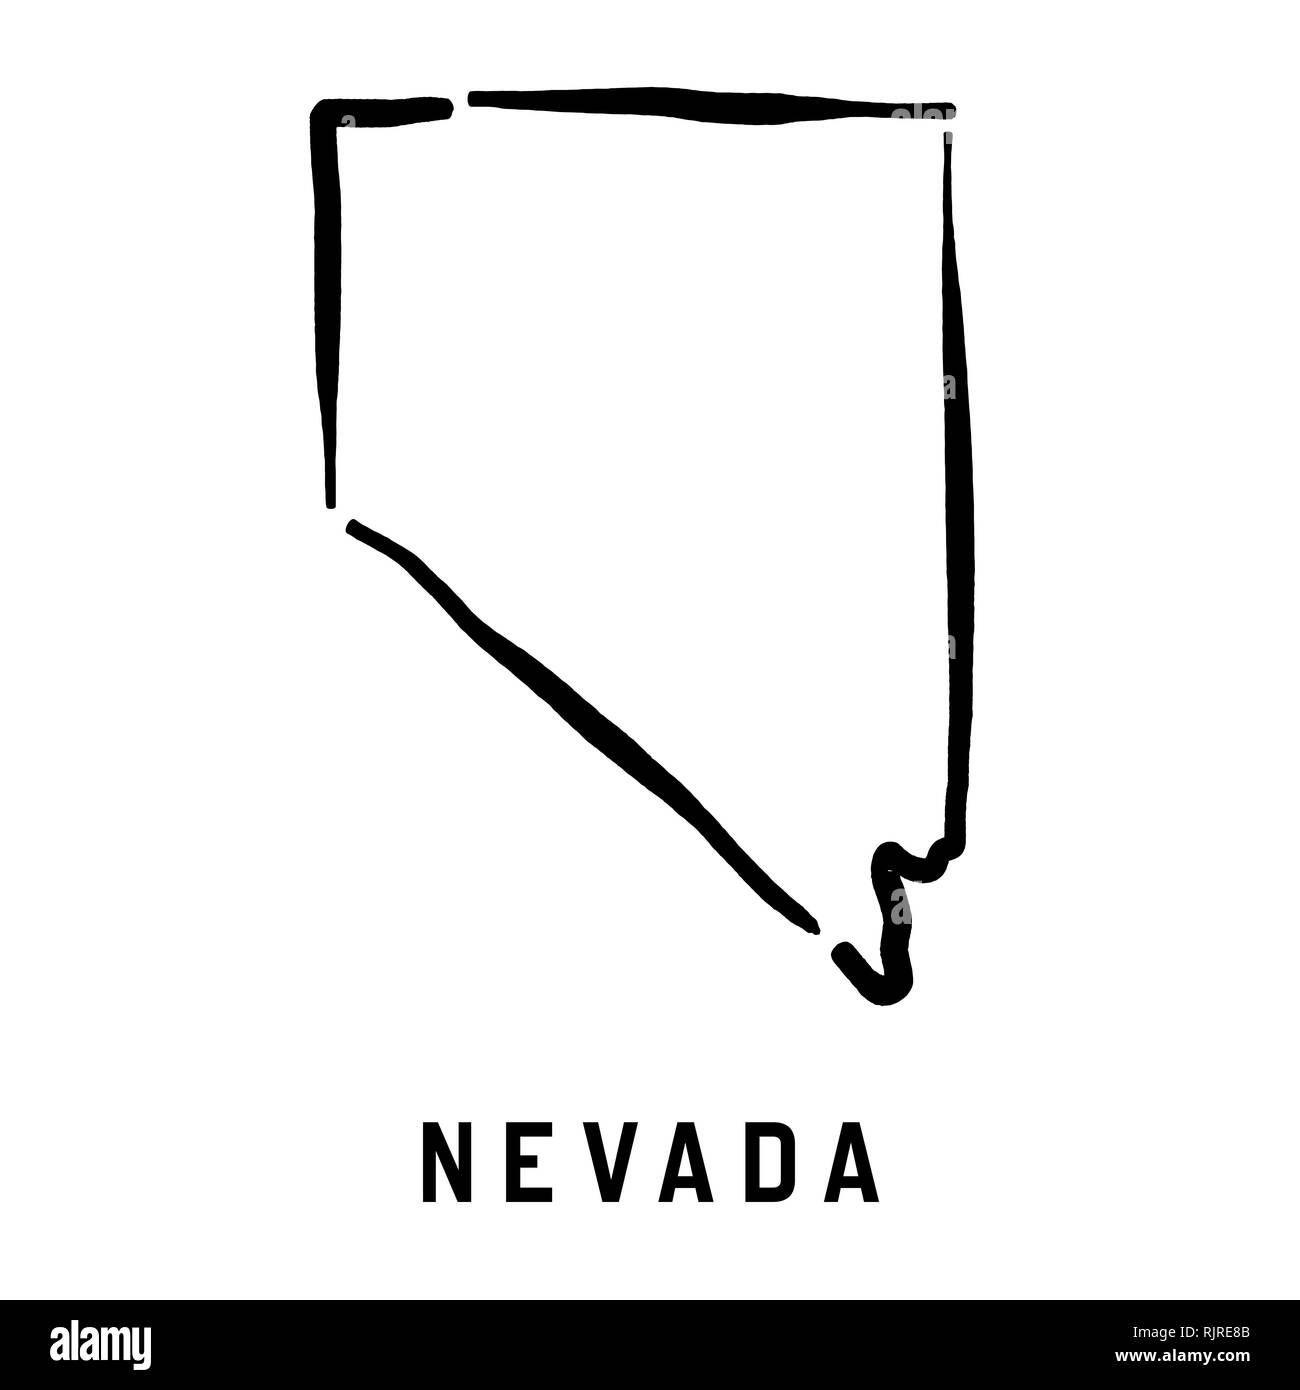 Nevada Simple Logo State Map Outline Smooth Simplified Us State - Simple-map-of-us